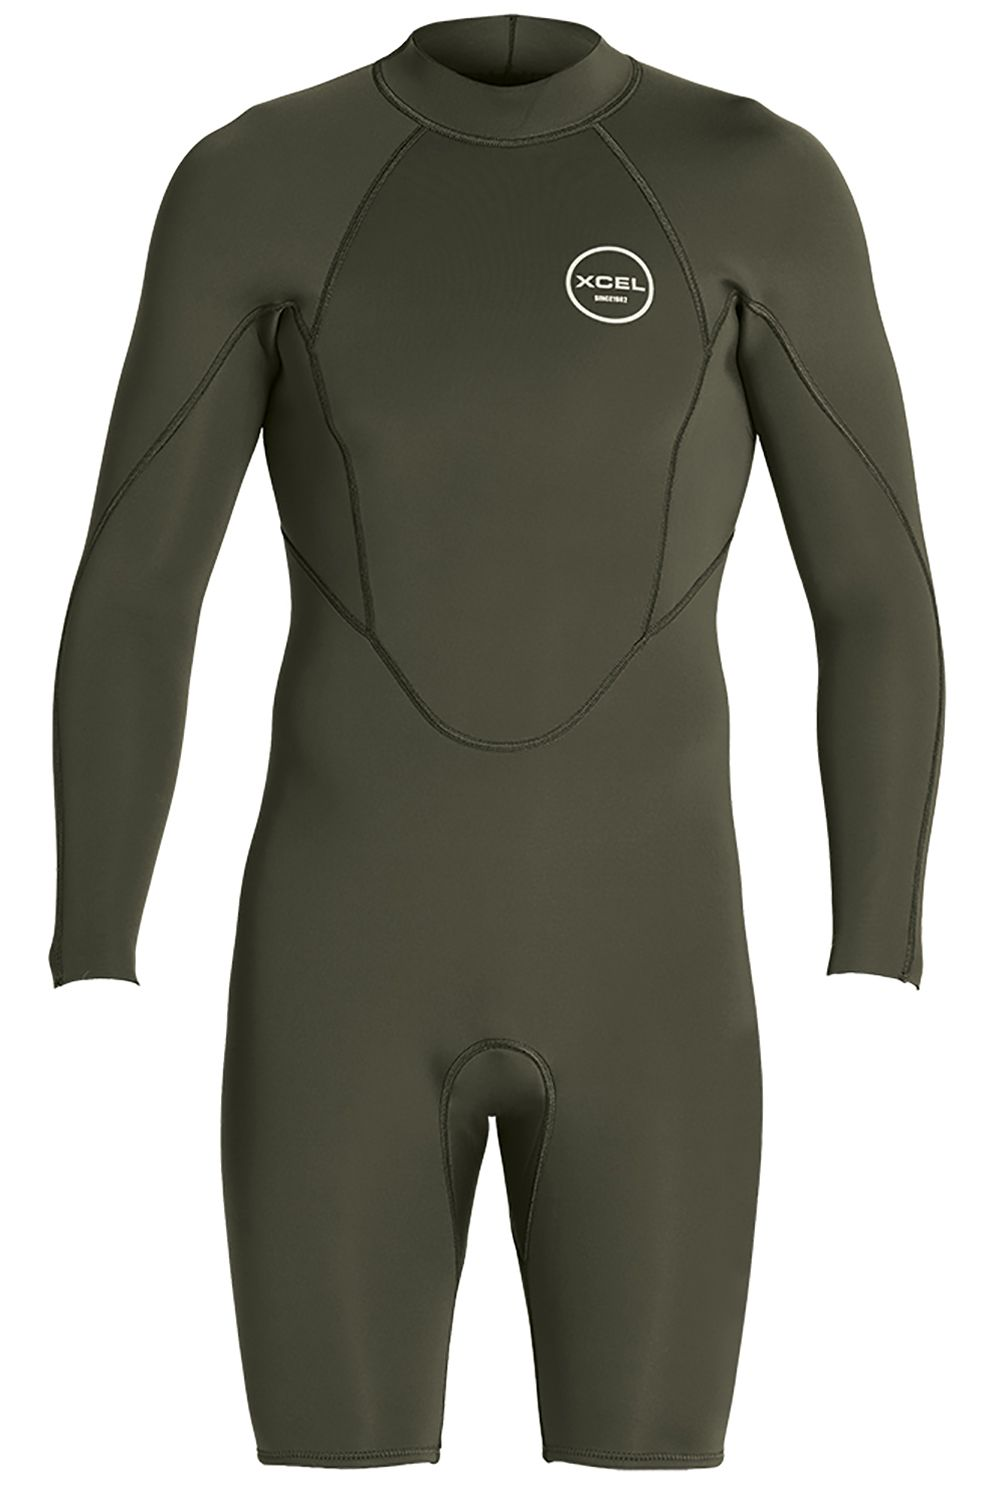 Fato Neoprene Xcel M AXIS L/S SPRING SUIT 2MM Dark Forest 2mm